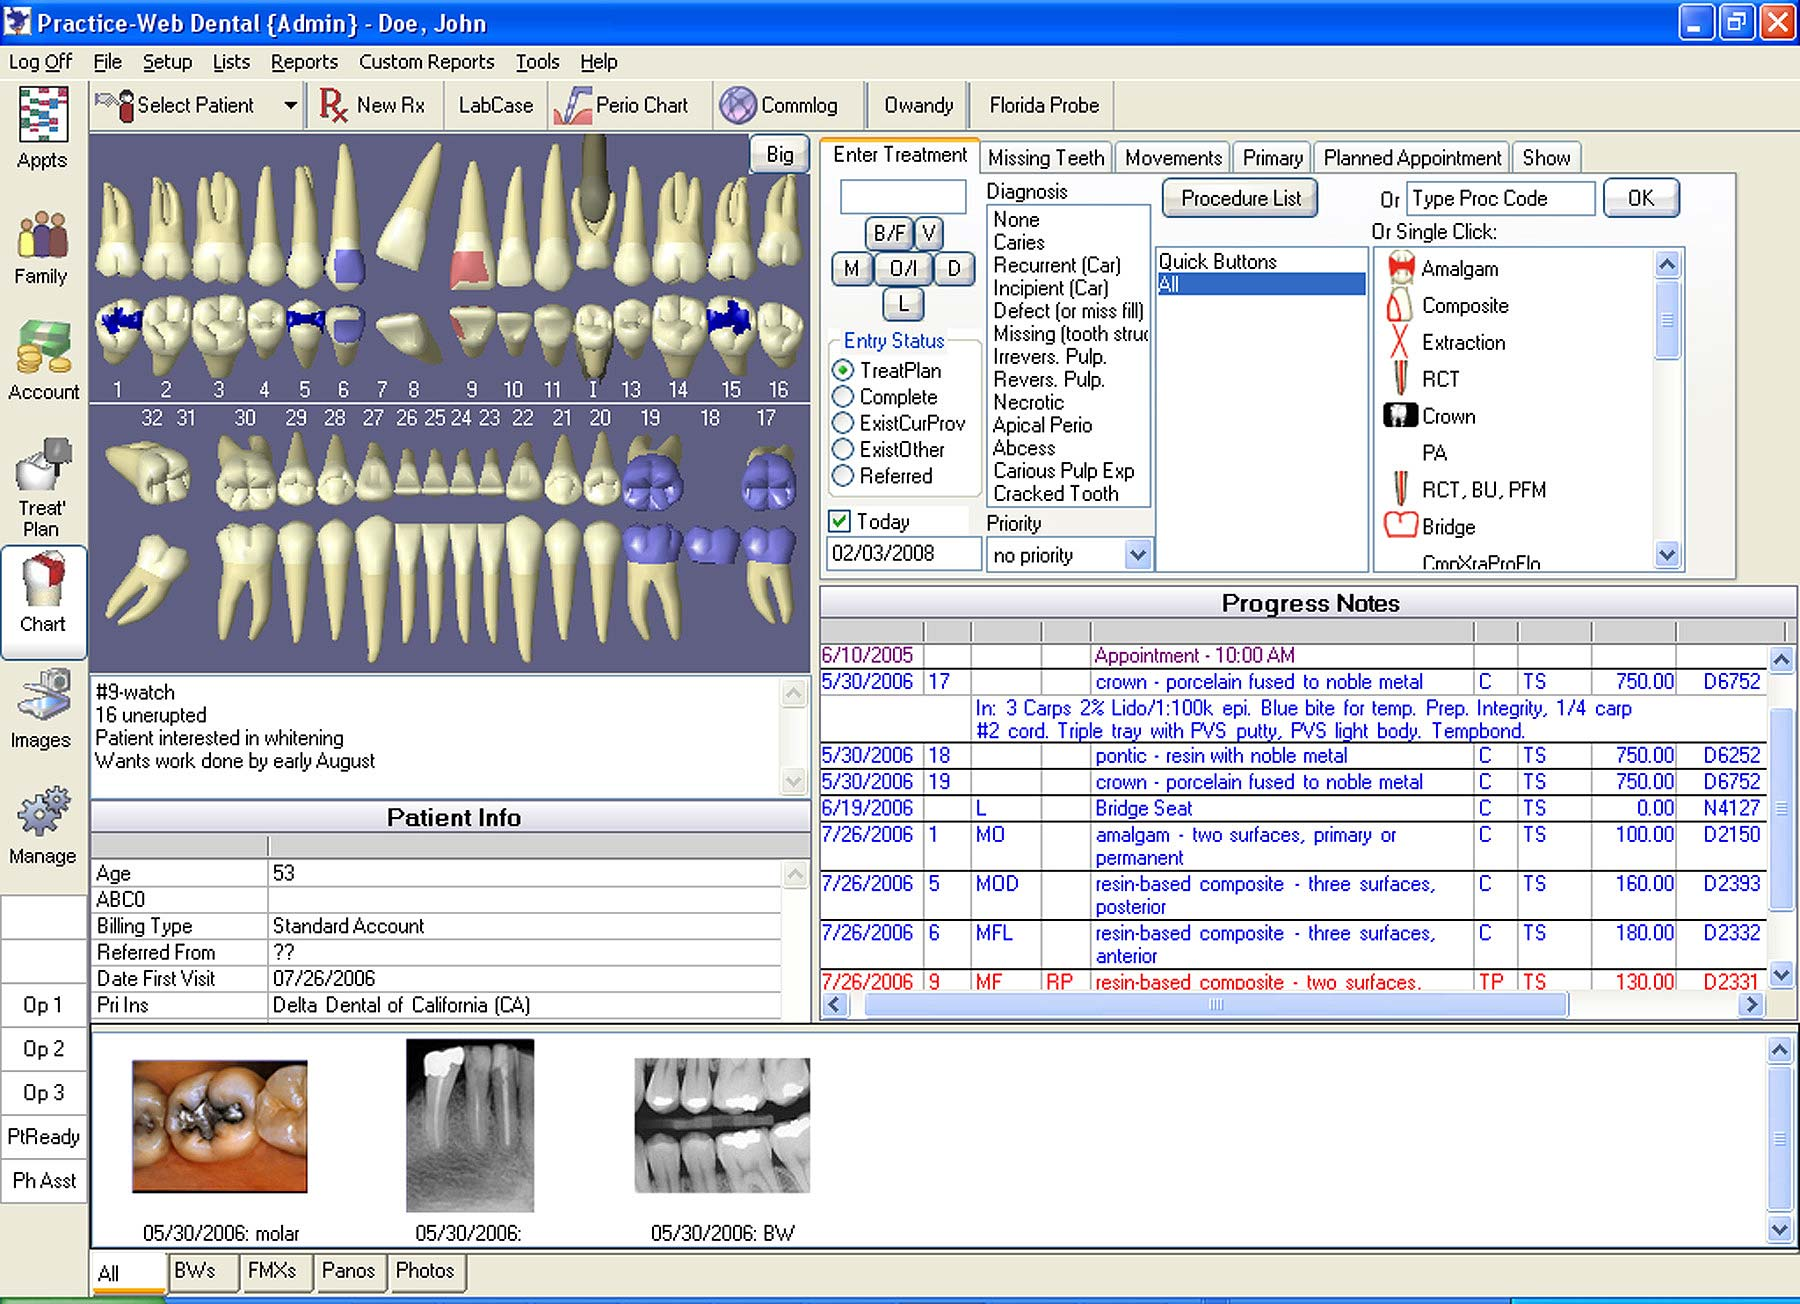 Practice Web Is An Advanced Dental Software Designed For